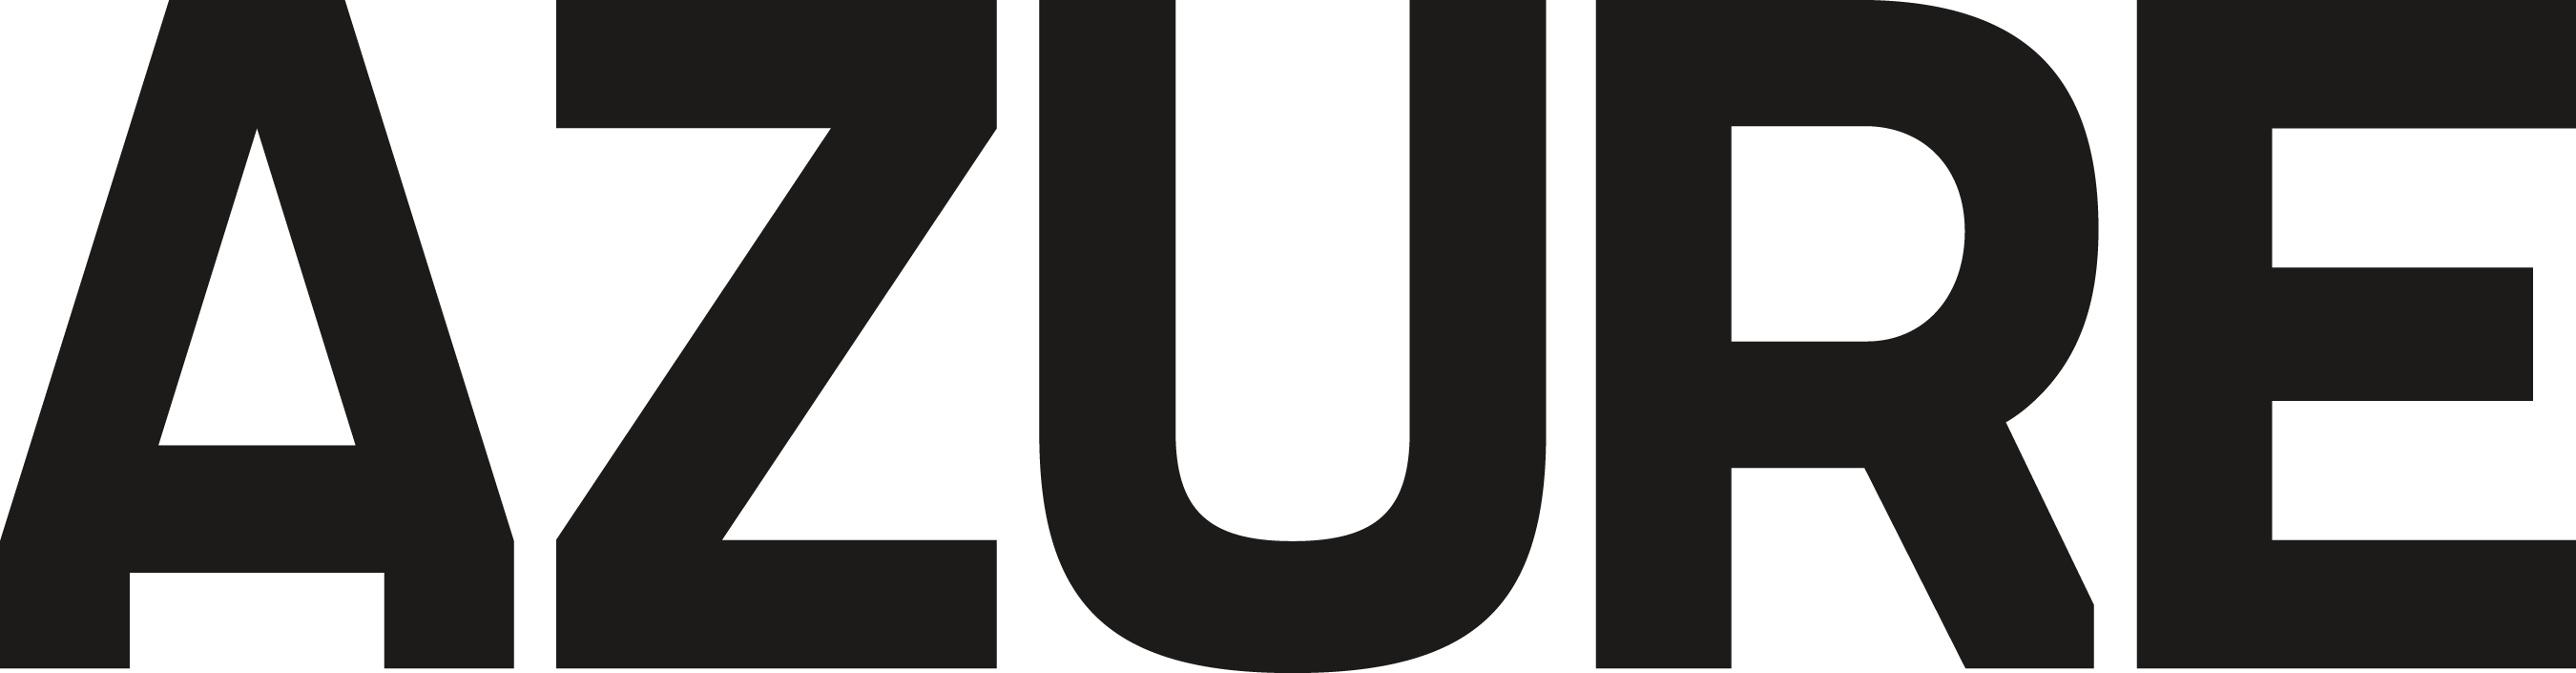 Azure logo written out in all black text.